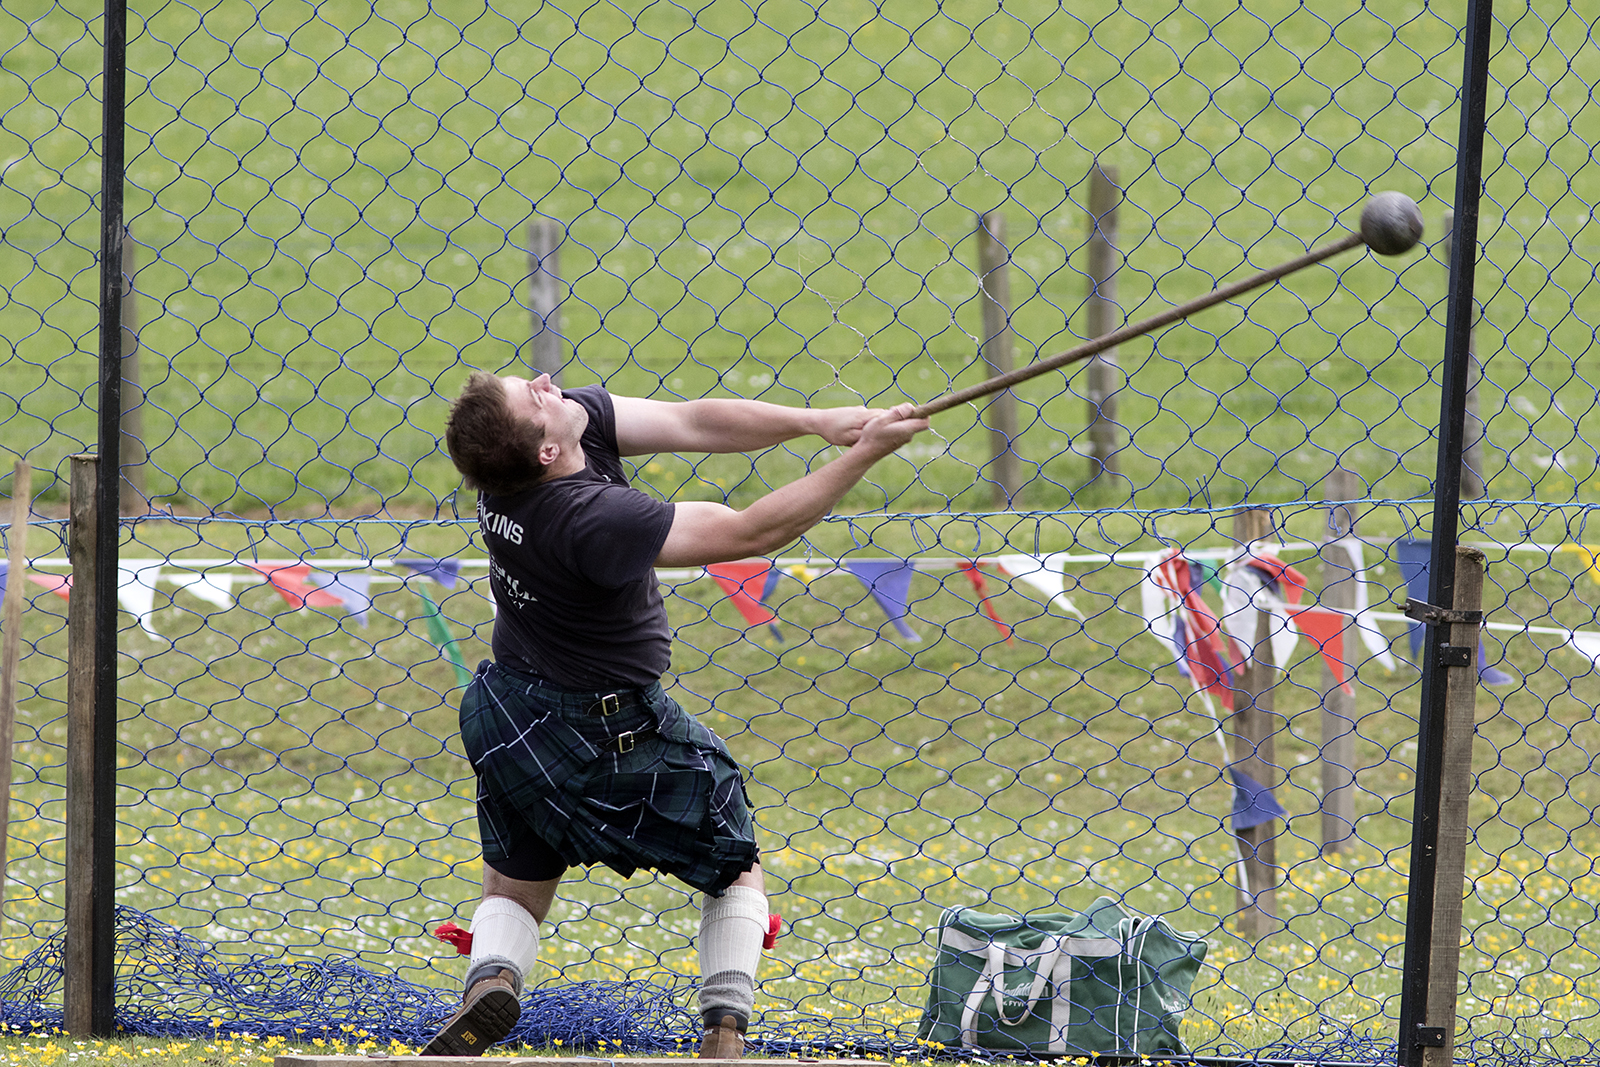 Hammer Throw at a Highland Games event in Scotland